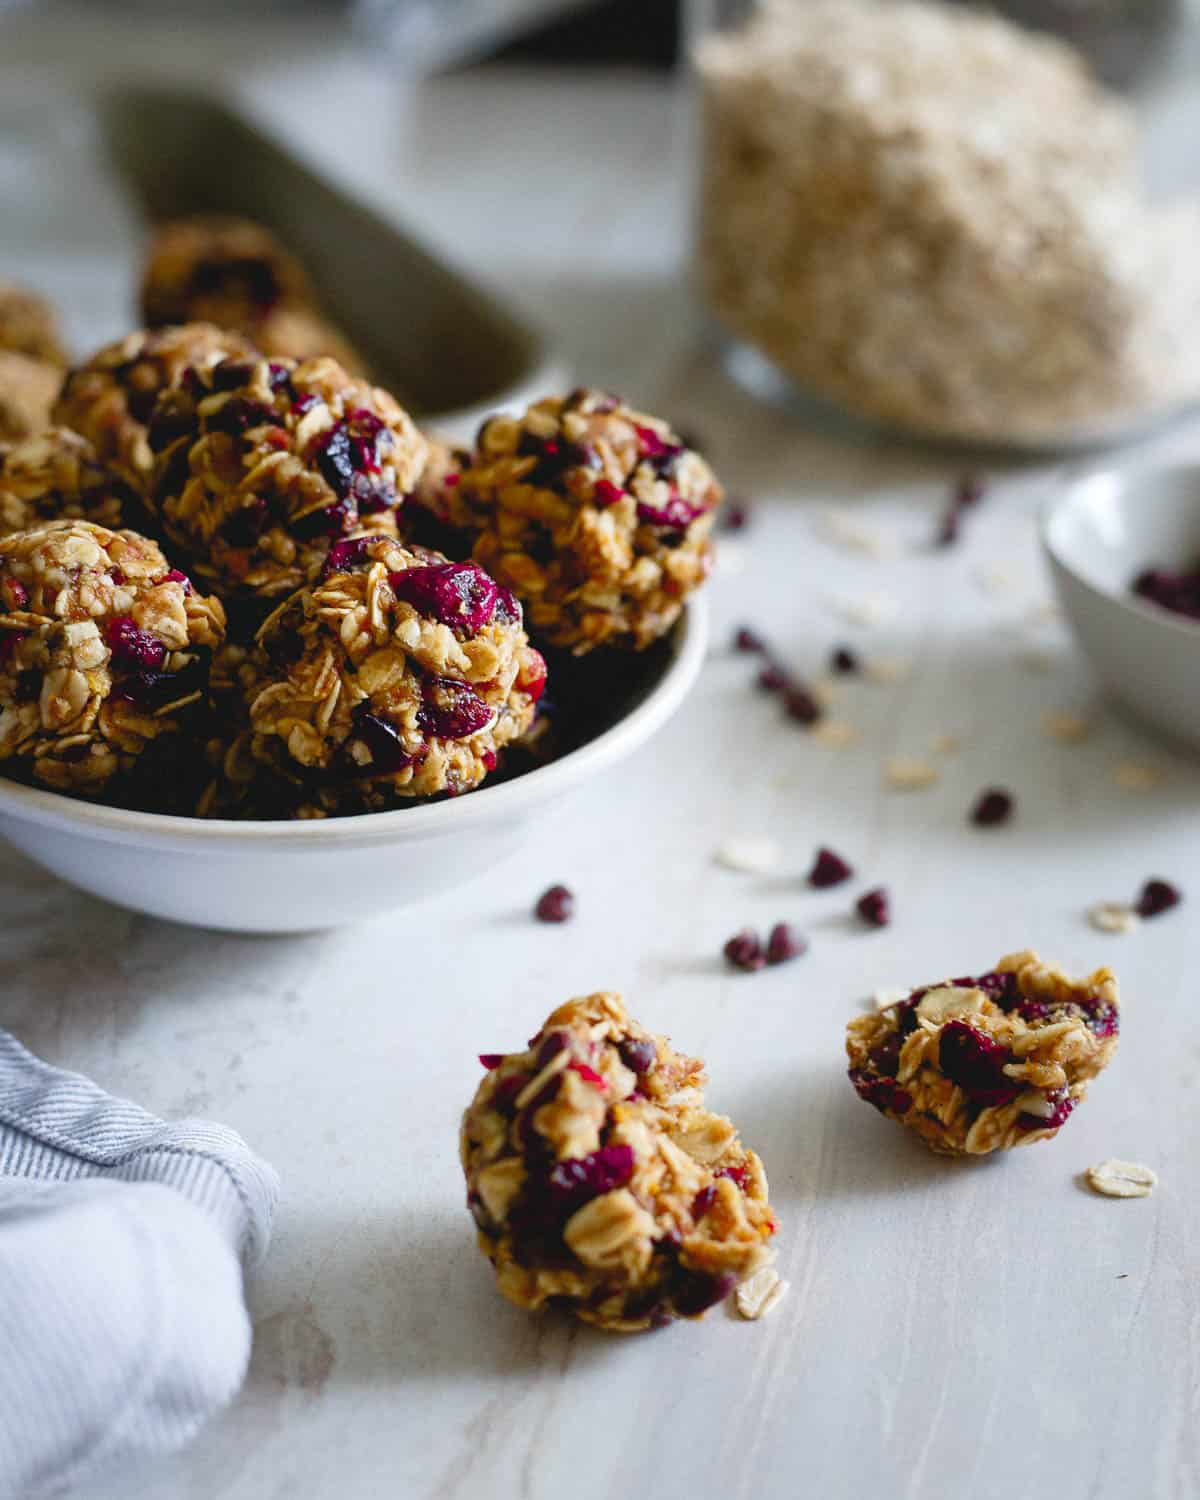 These easy oatmeal cookie bites are no bake and filled with the holiday flavors of cranberries and orange. They taste just like a cookie too!